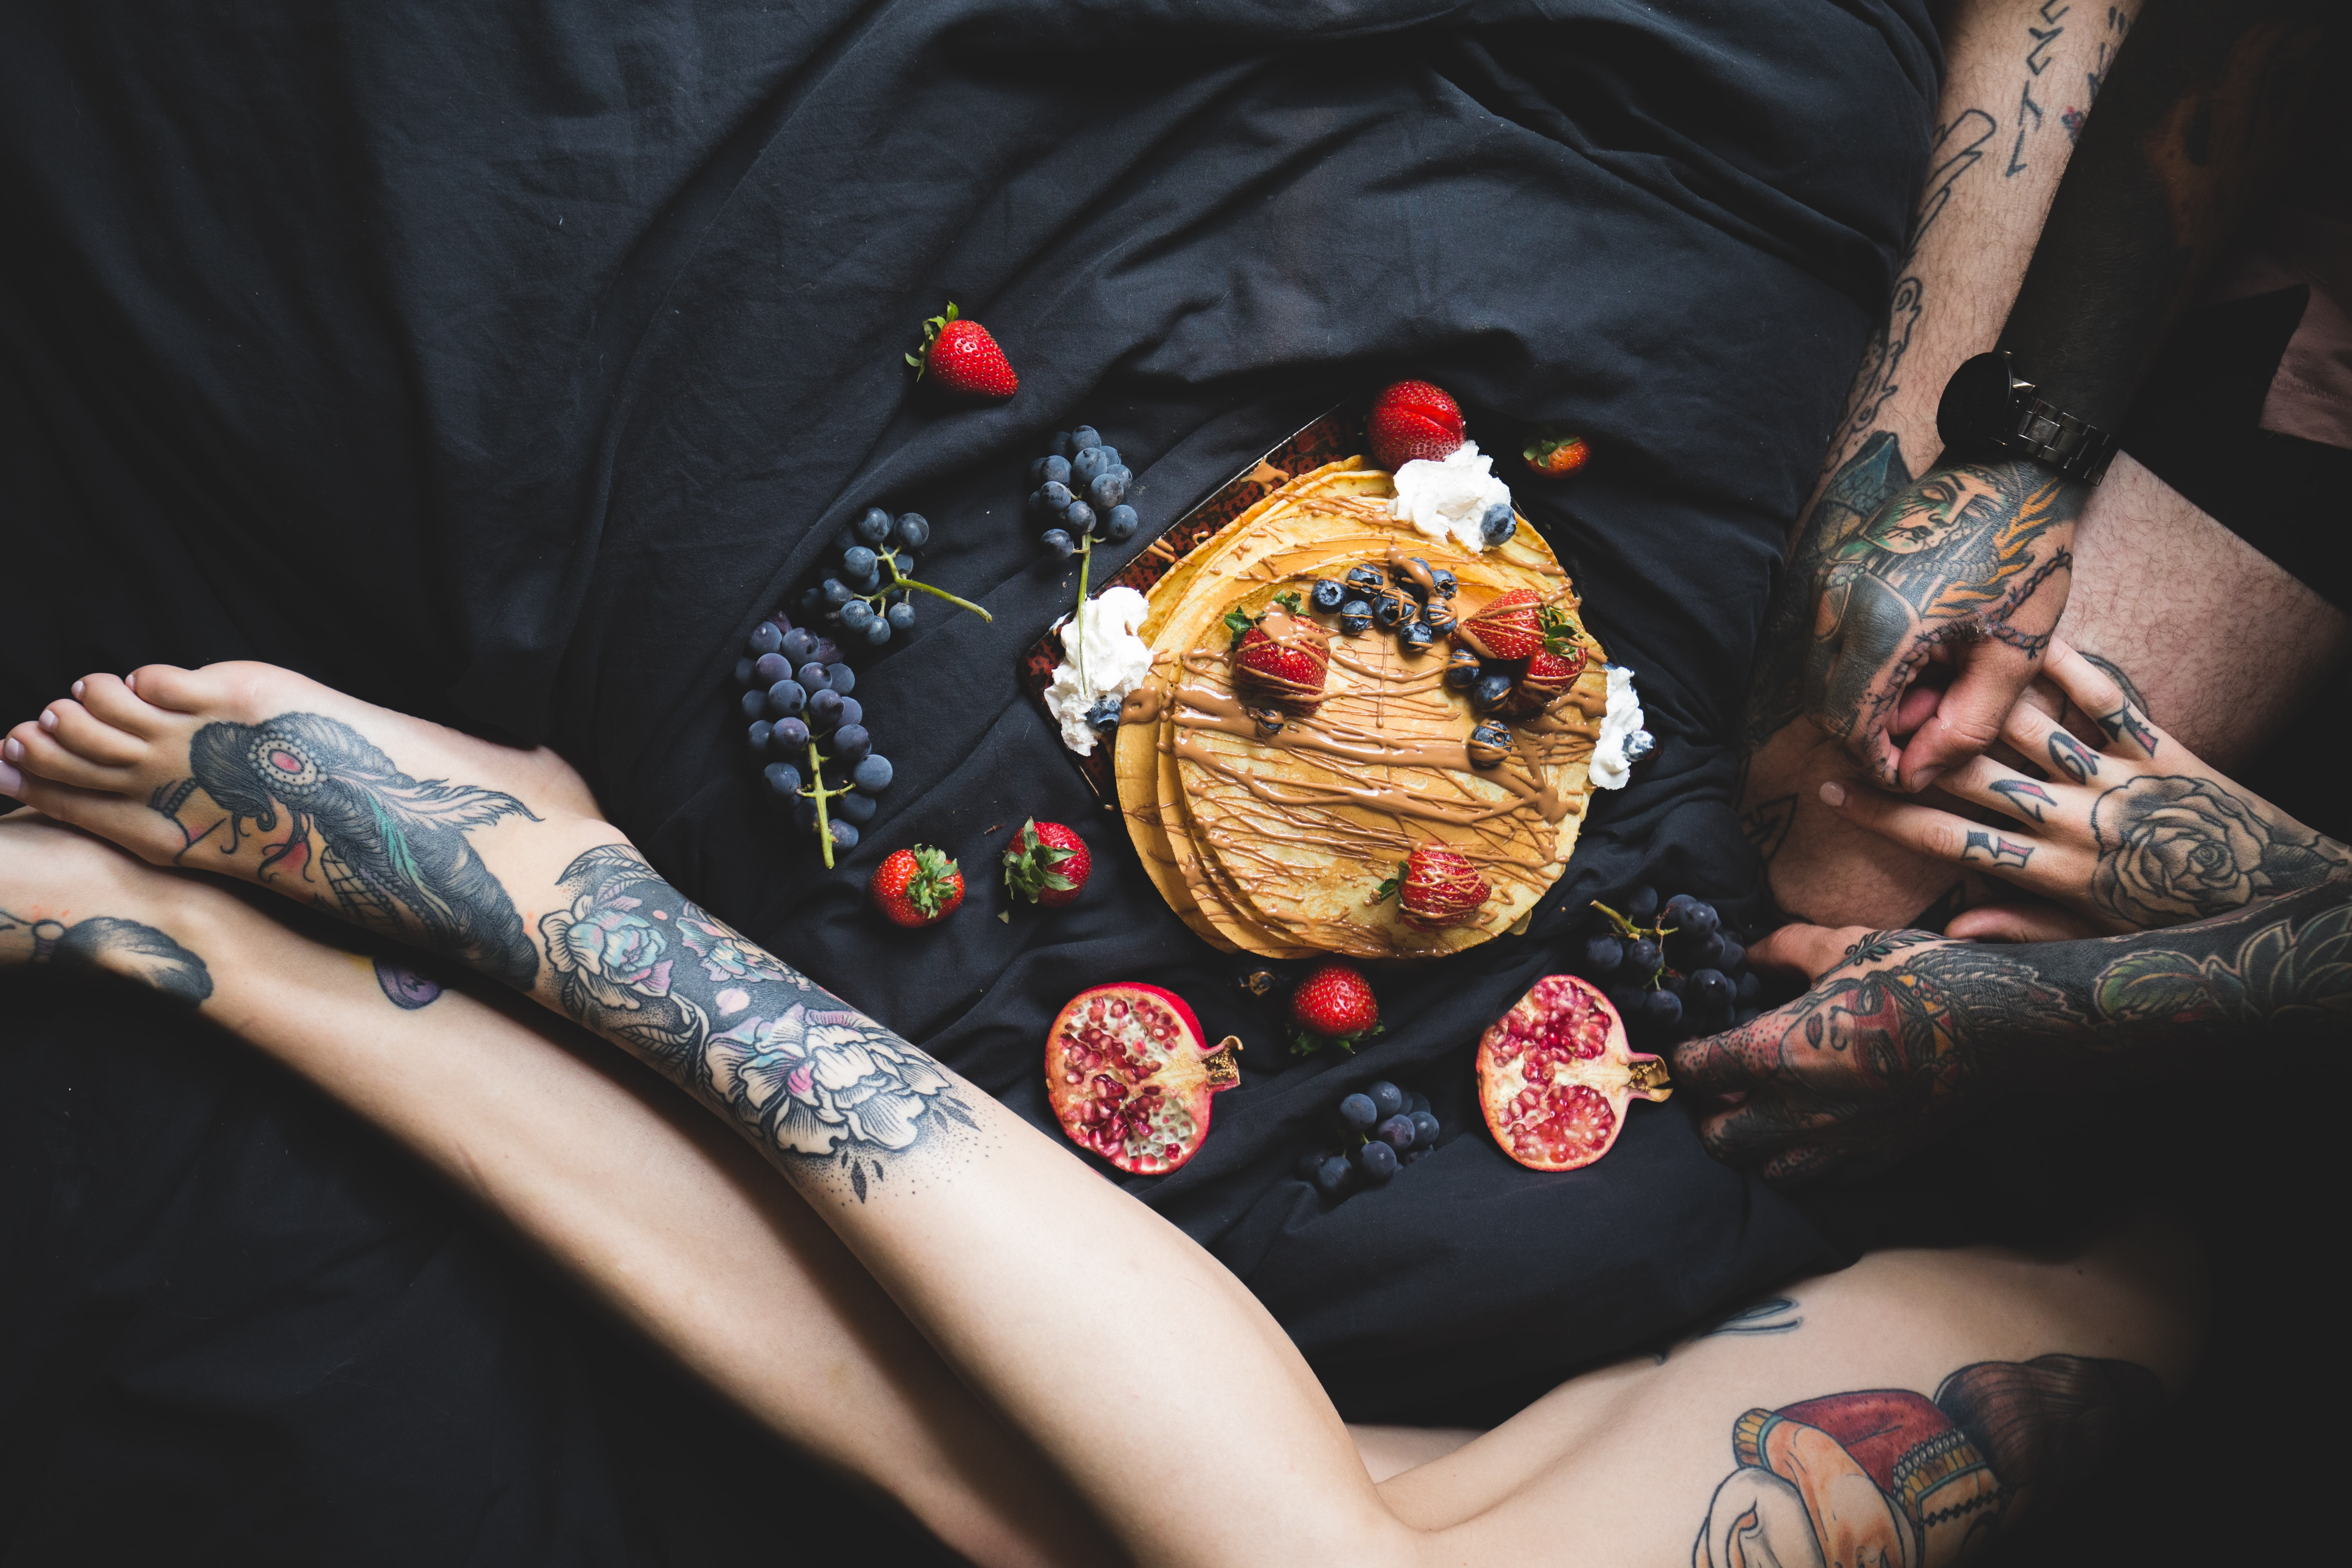 A tattooed couple lying down with pancakes and various fruits.